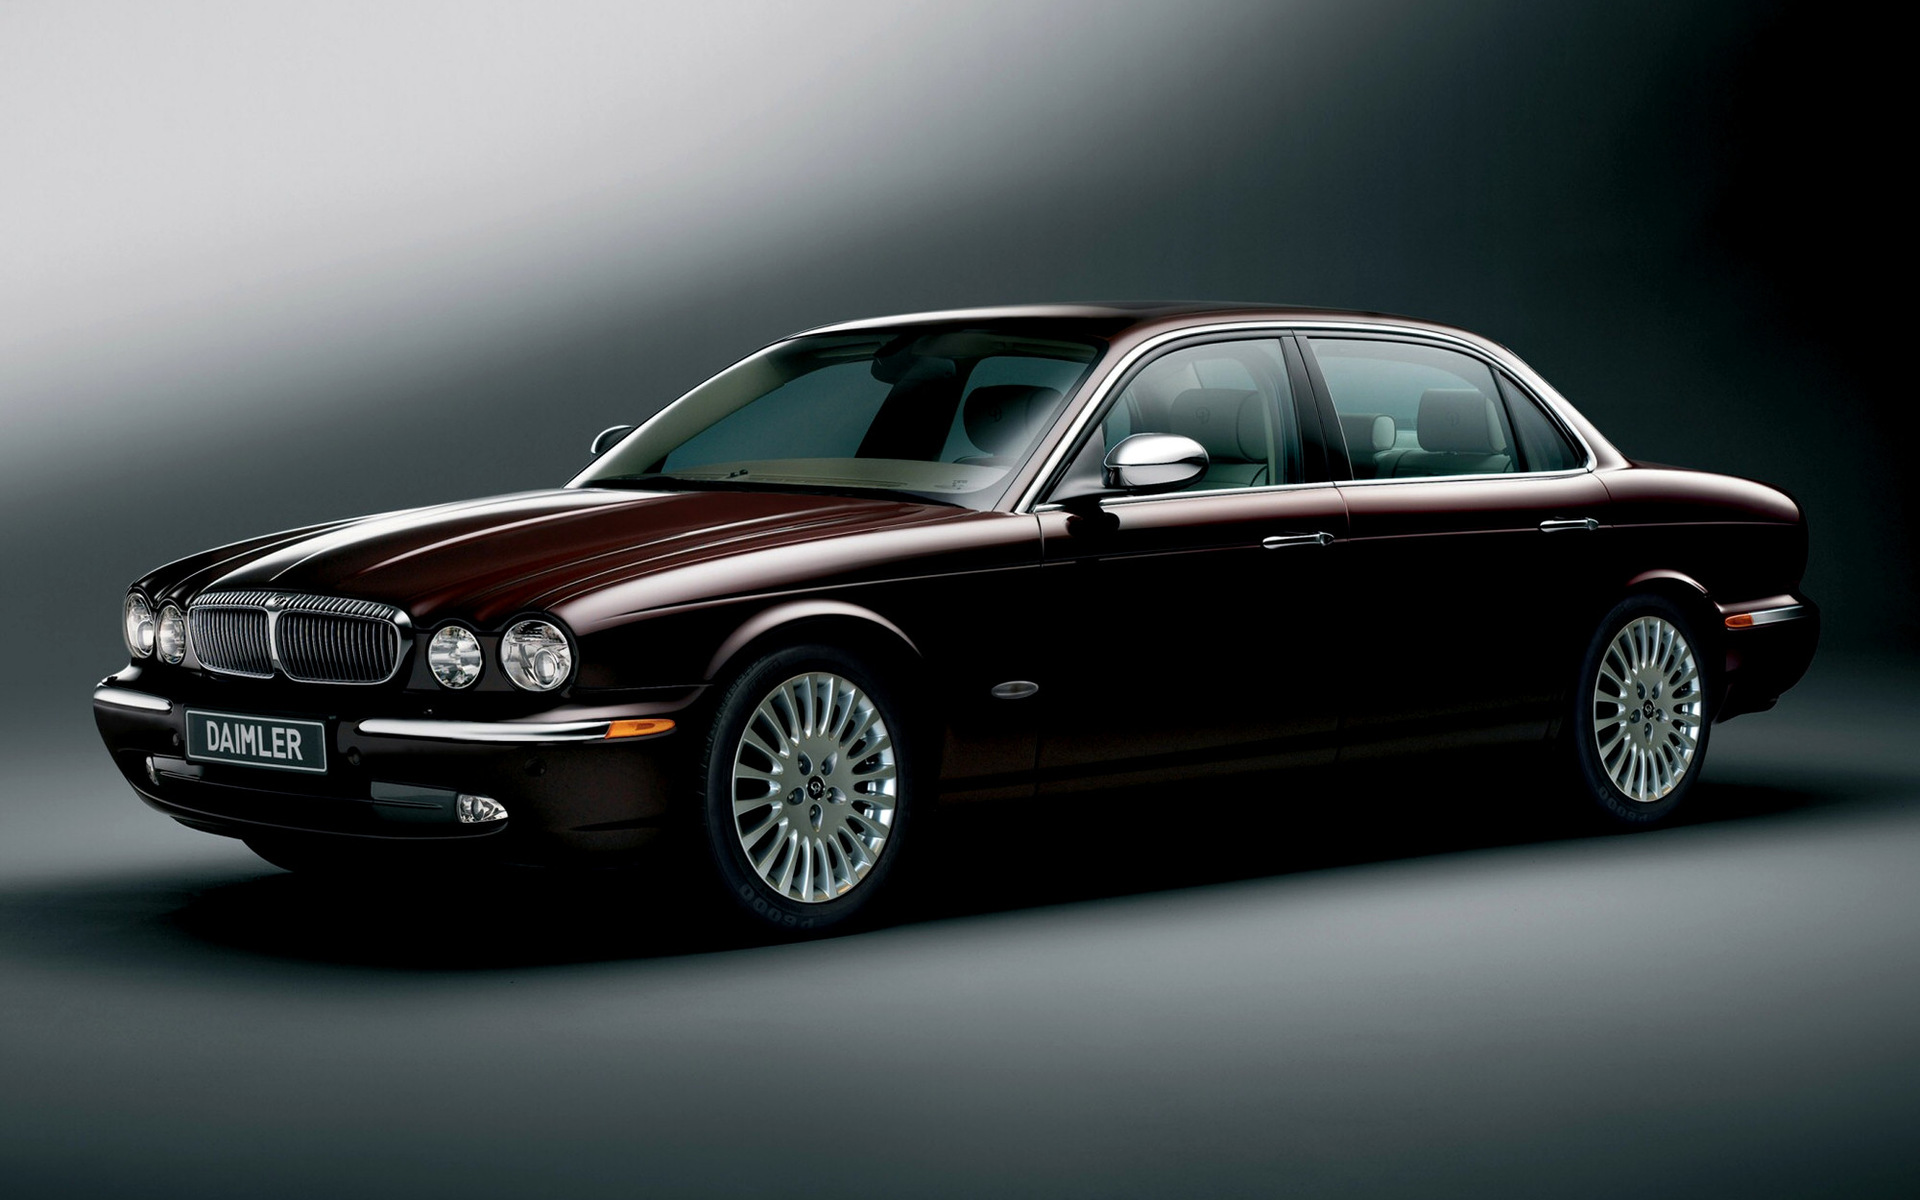 2005 Daimler Super Eight - Wallpapers and HD Images | Car ...